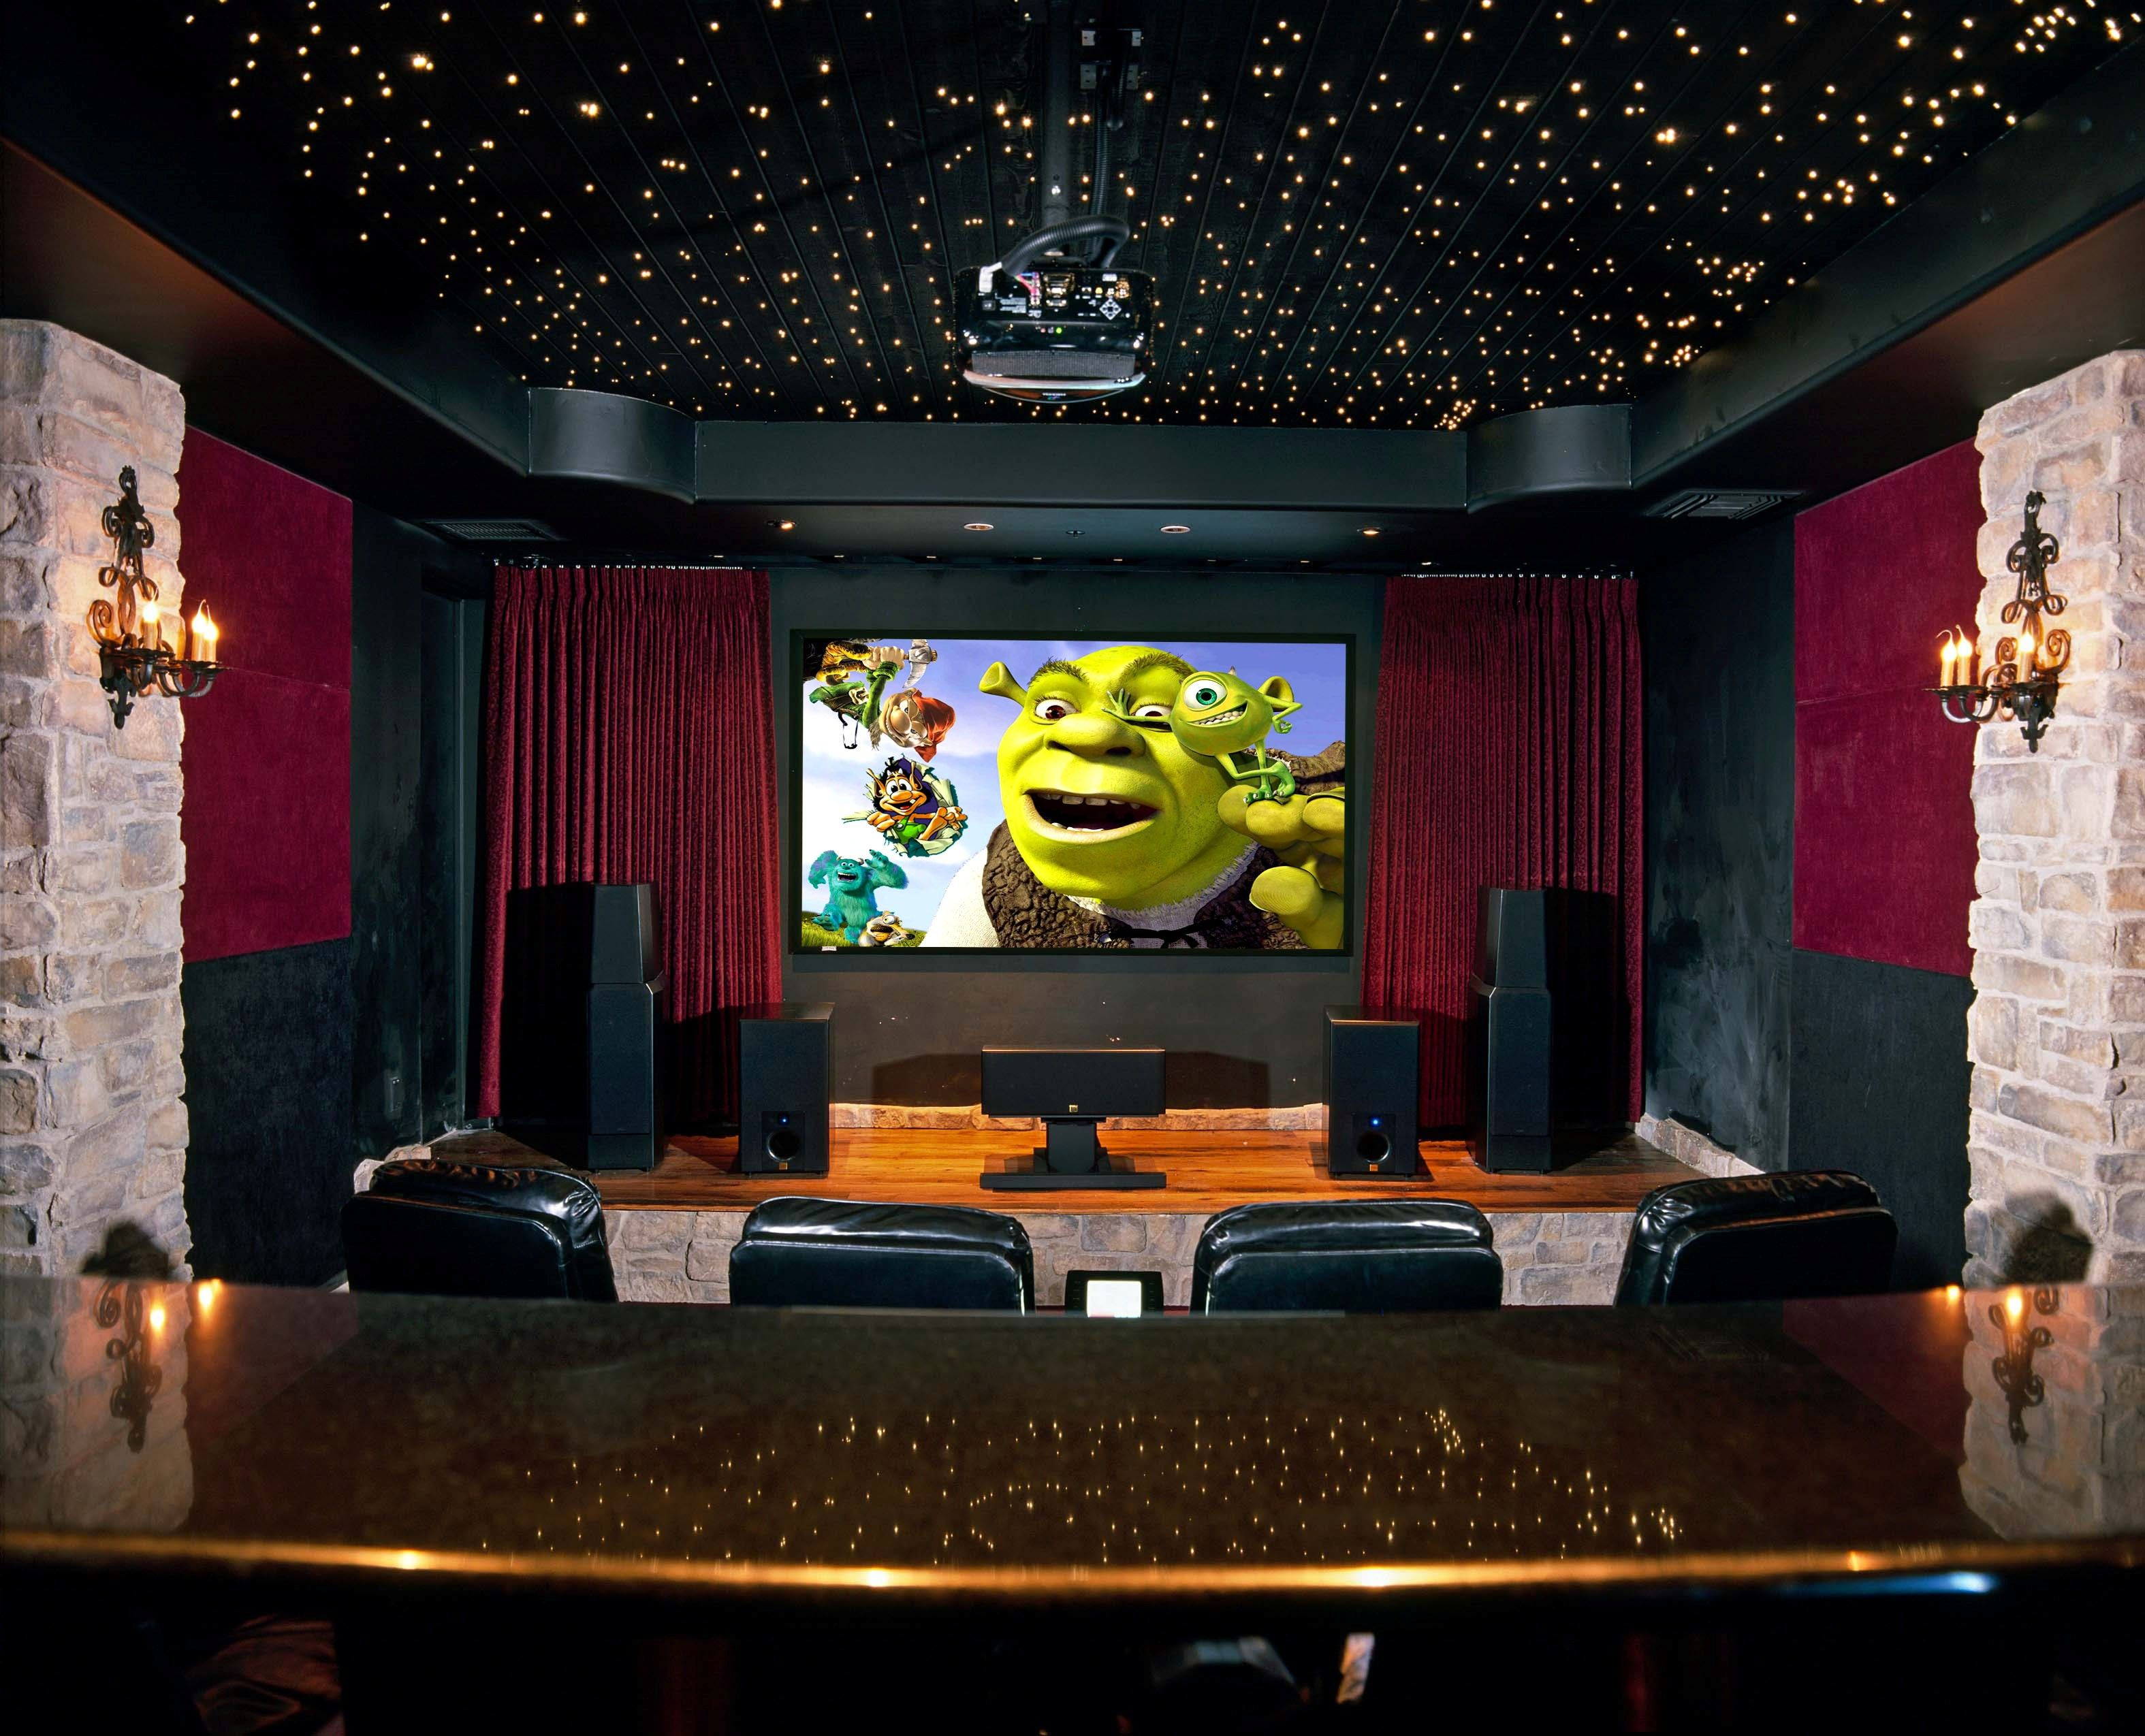 creative home cinema decor decor modern on cool fresh - Home Cinema Decor